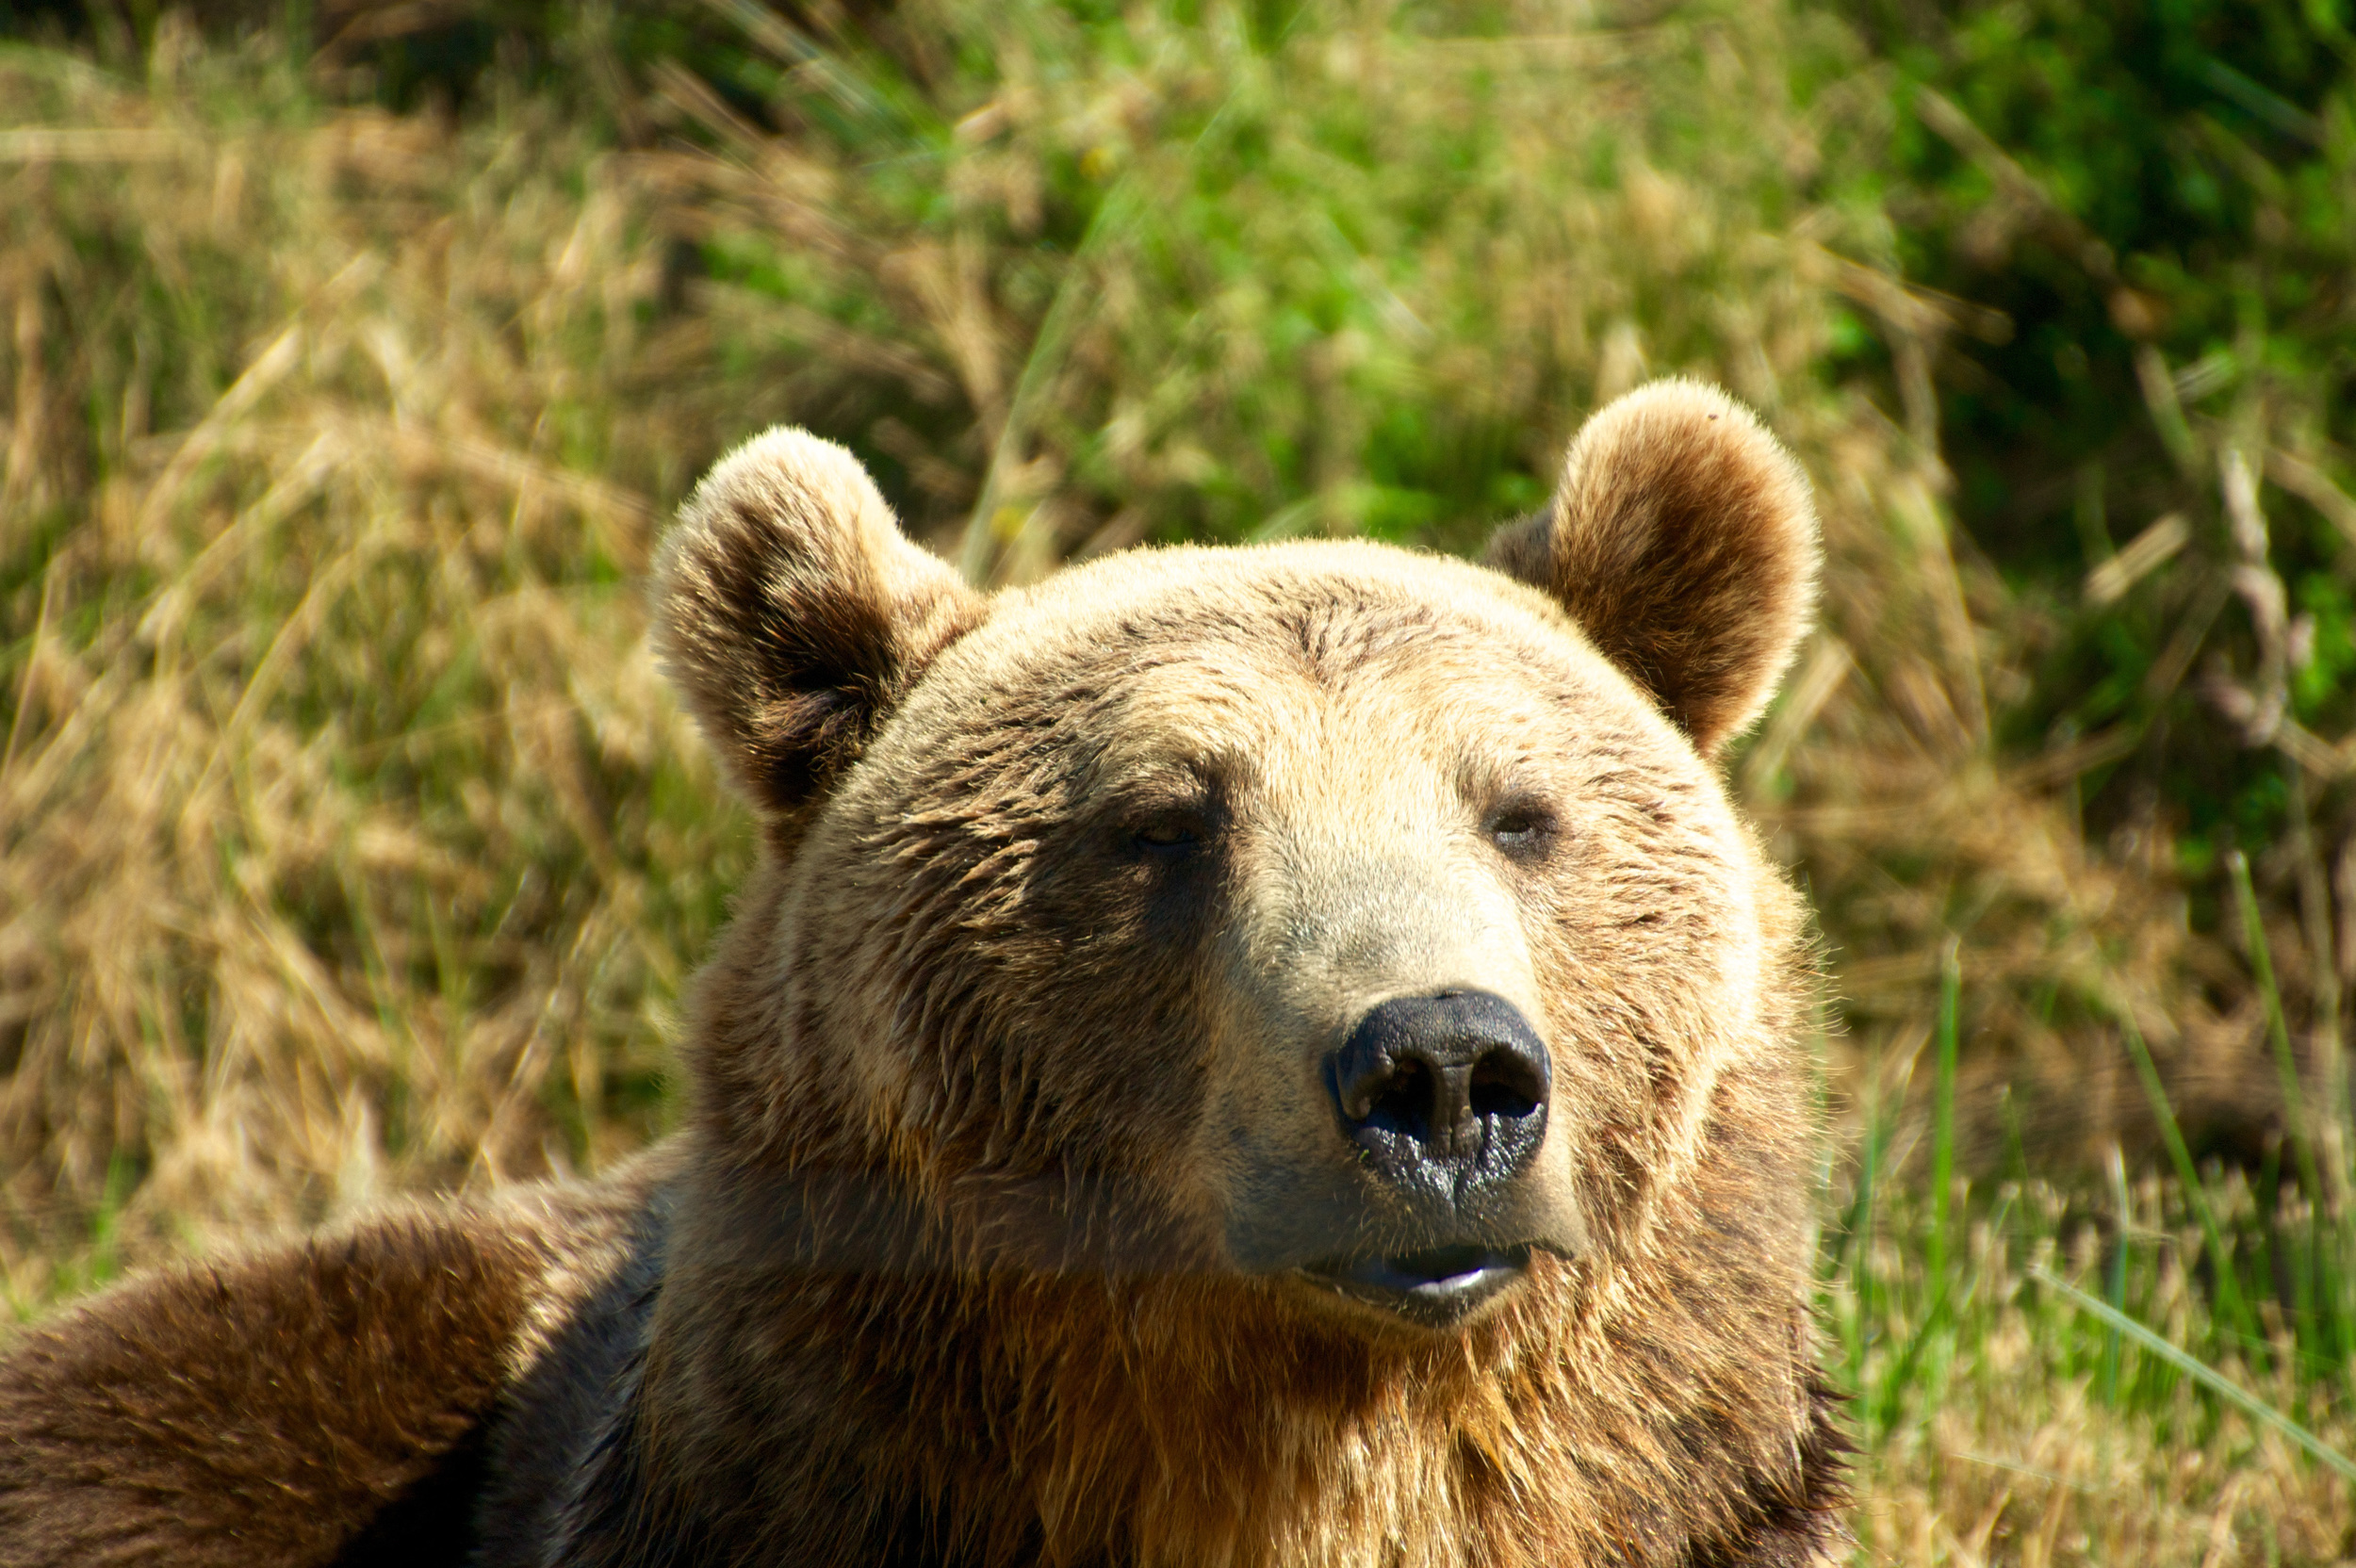 Fluffy brown bear...they must have been so hot